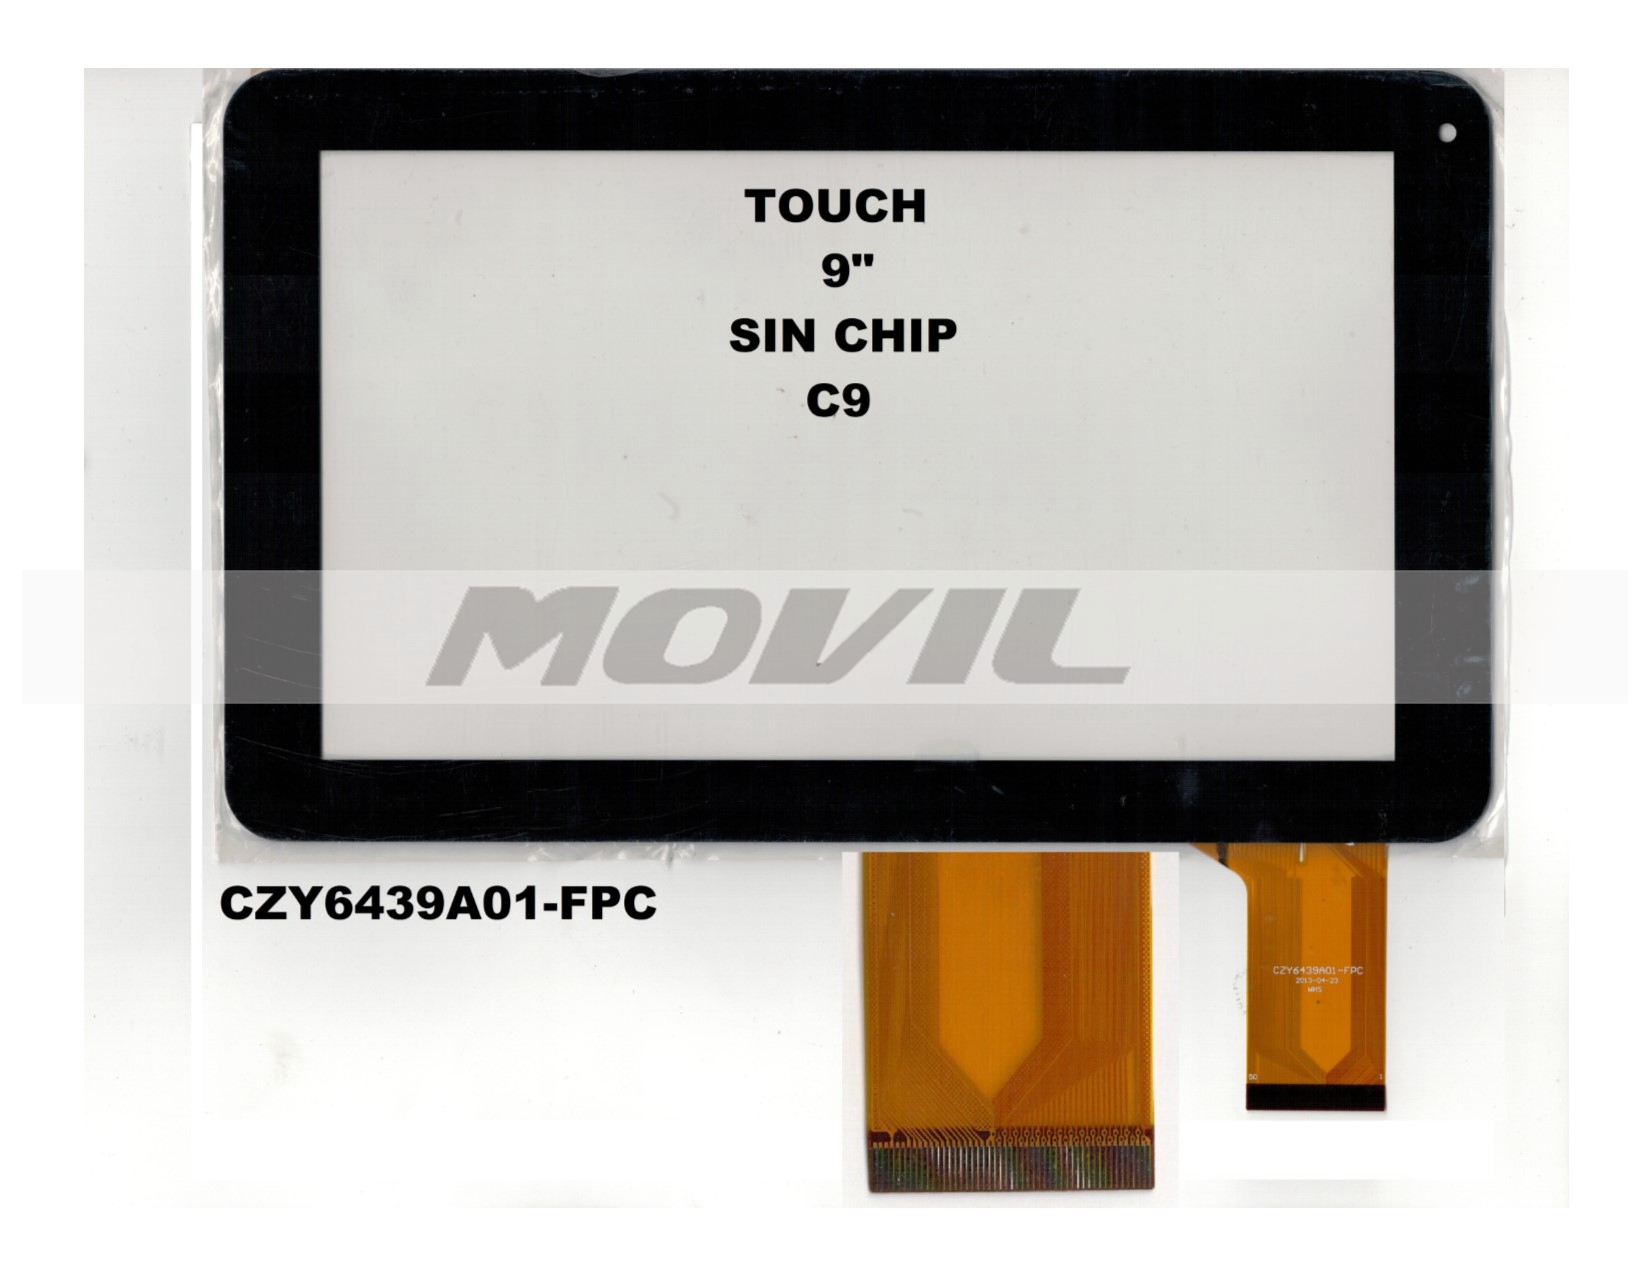 Touch tactil para tablet flex 9 inch SIN CHIP C9 CZY6439A01-FPC